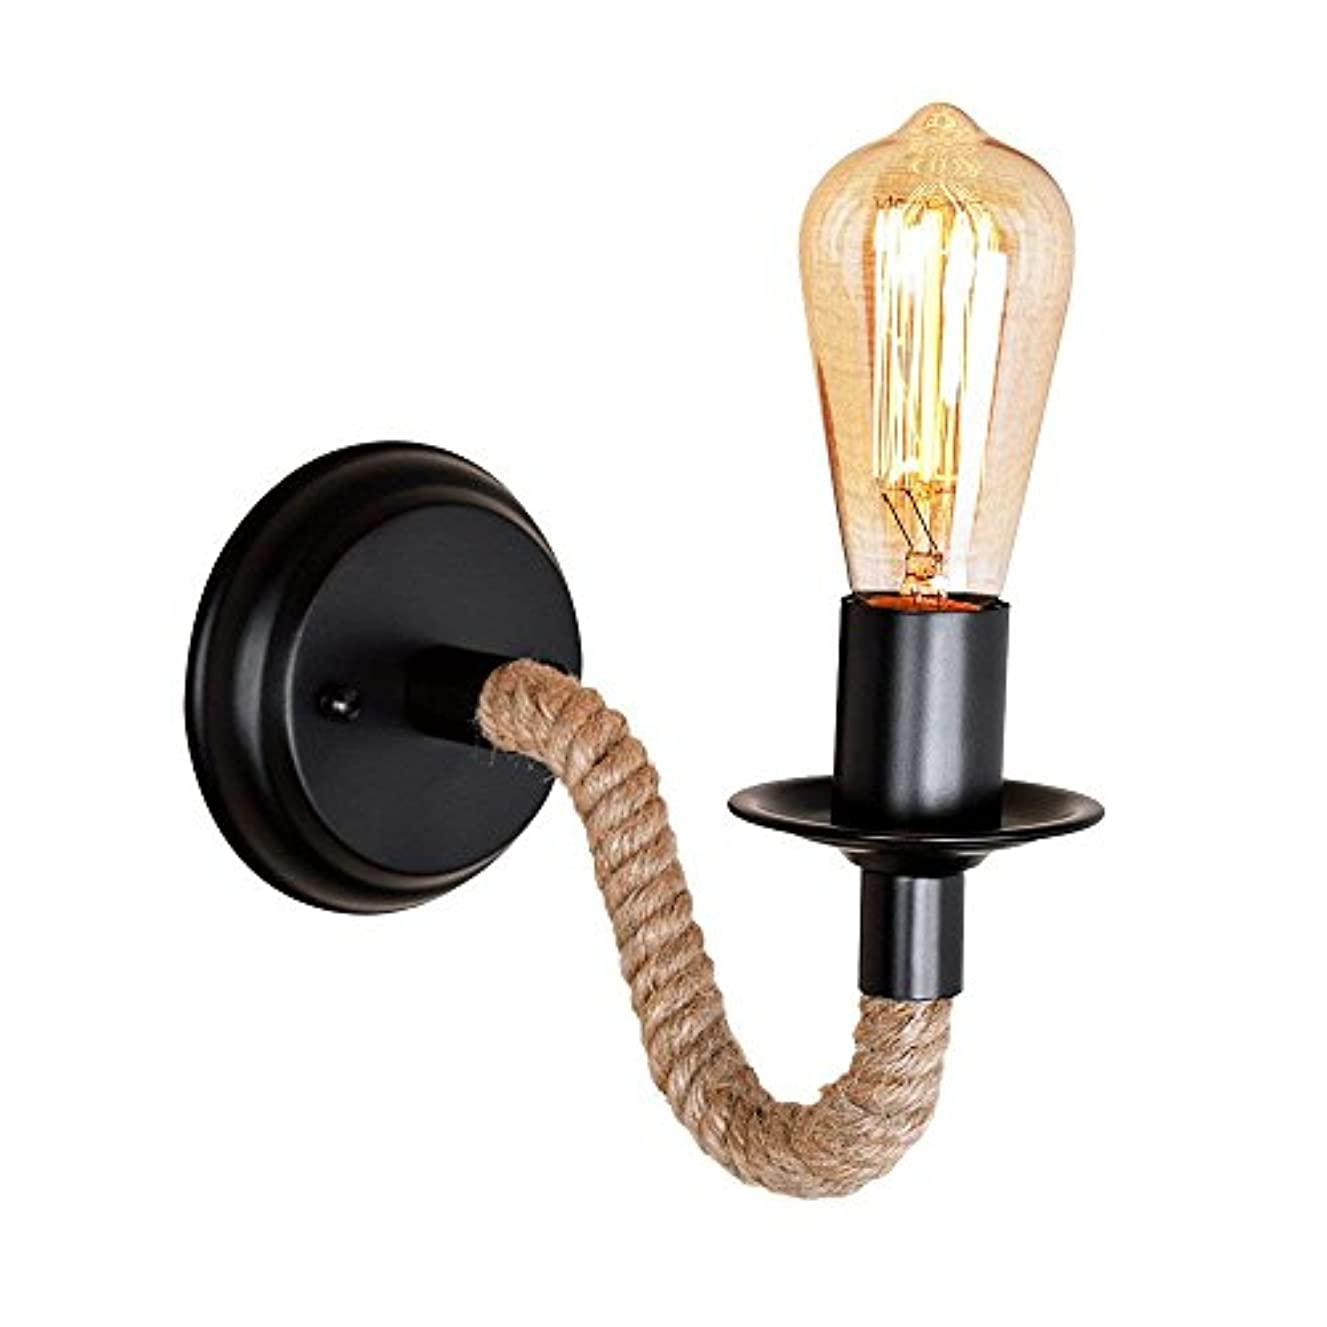 Hines Vintage Industrial Hemp Rope Wall Lights Retro Loft 1-Light Rope Light Wall Light Corridor Kitchen E27 Decoration Fitting Wall Lamp